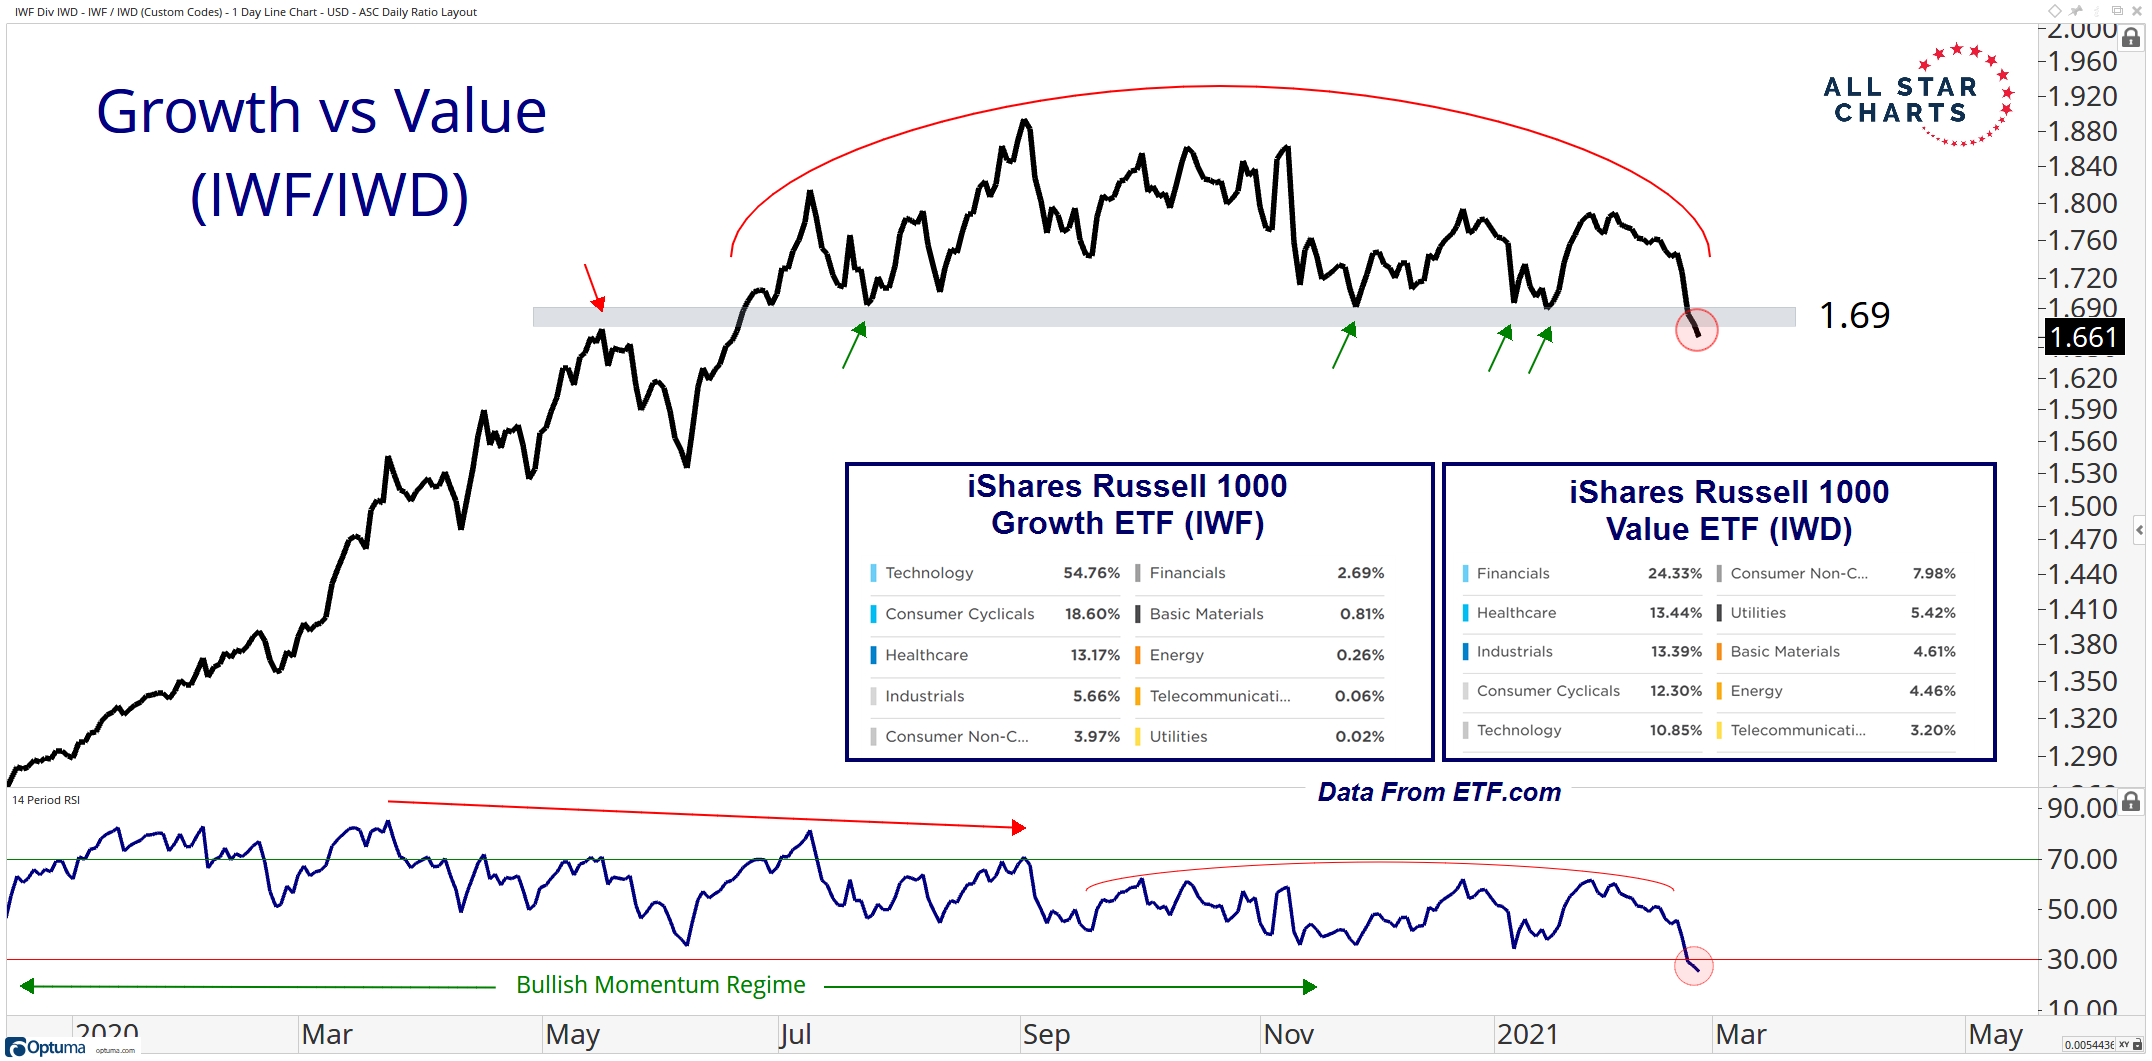 Growth vs. Value is breaking down from a decade-long uptrend